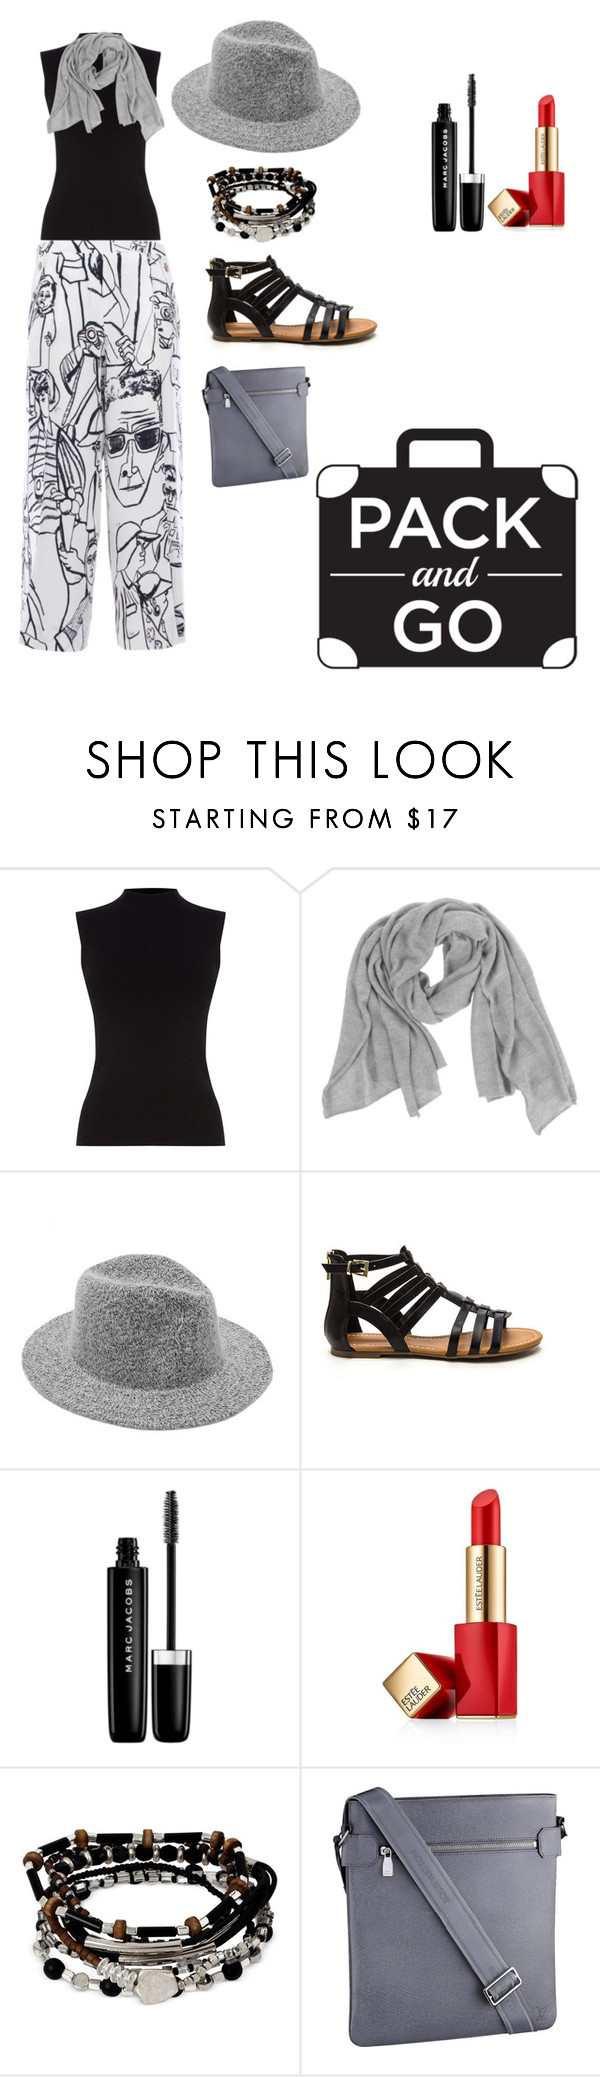 """Ready for a journey!"" by akdenizbasak ❤ liked on Polyvore featuring Emilio Pucci, Oasis, Samantha Holmes, Marc Jacobs, Estée Lauder, Kenneth Cole and Louis Vuitton"